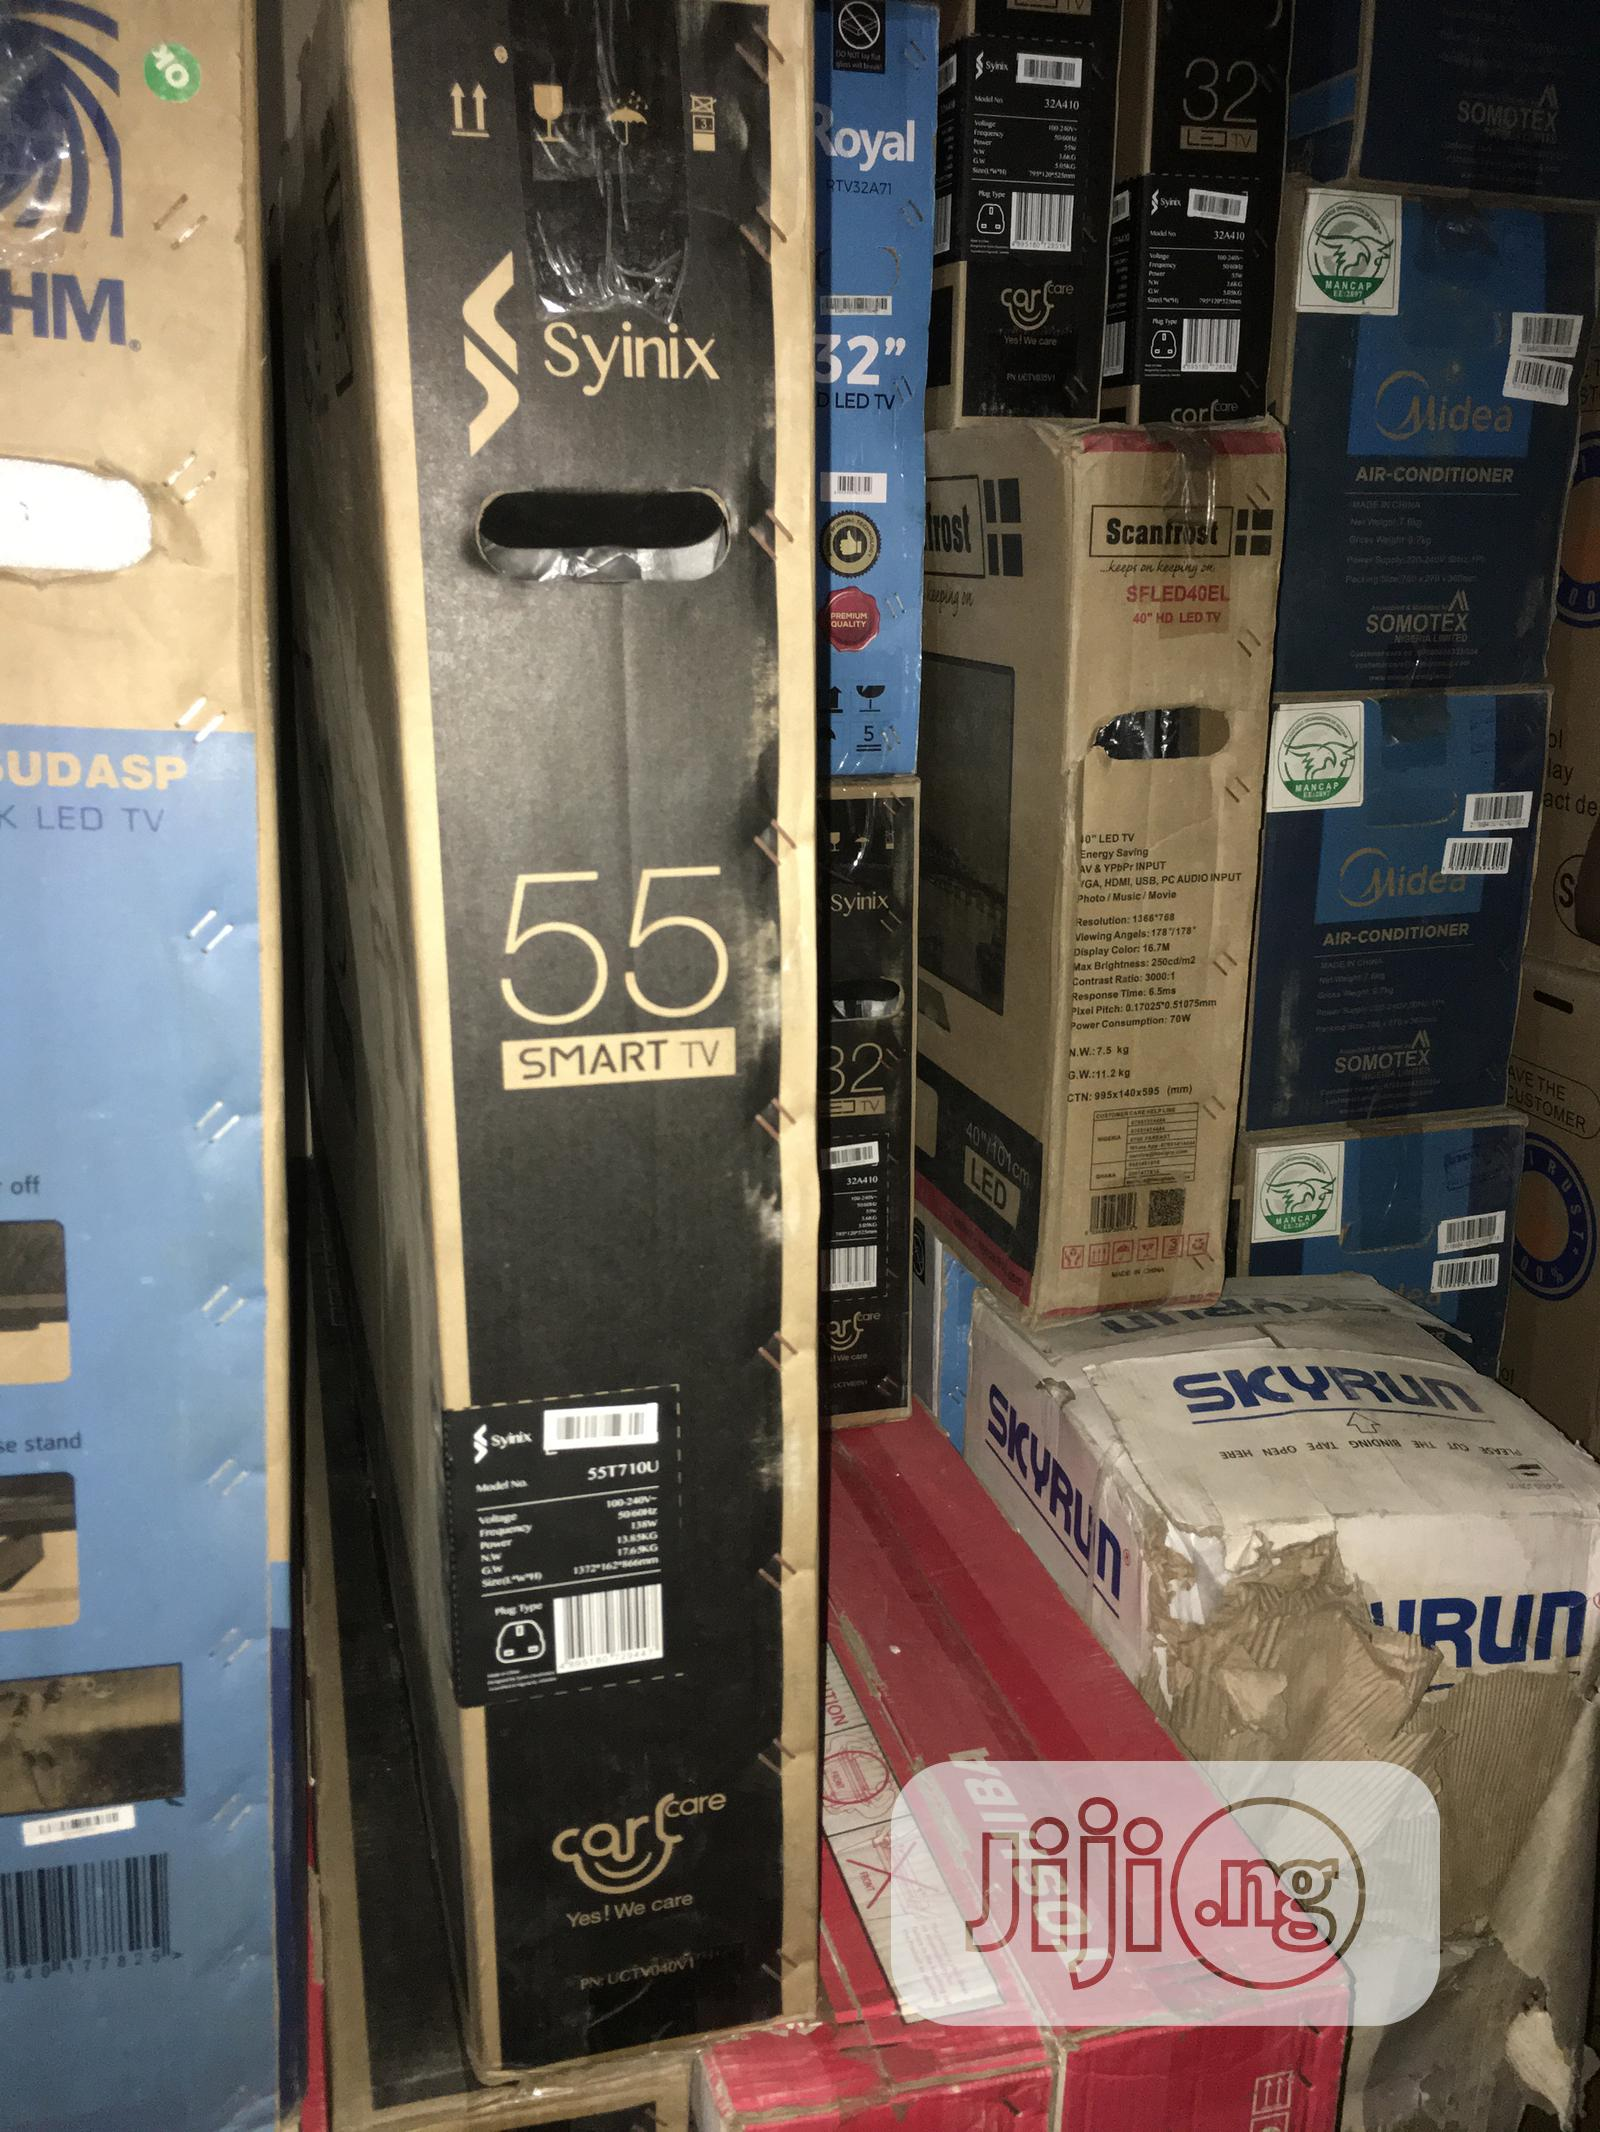 Synix Smart Tv 55 Inches | TV & DVD Equipment for sale in Kado, Abuja (FCT) State, Nigeria